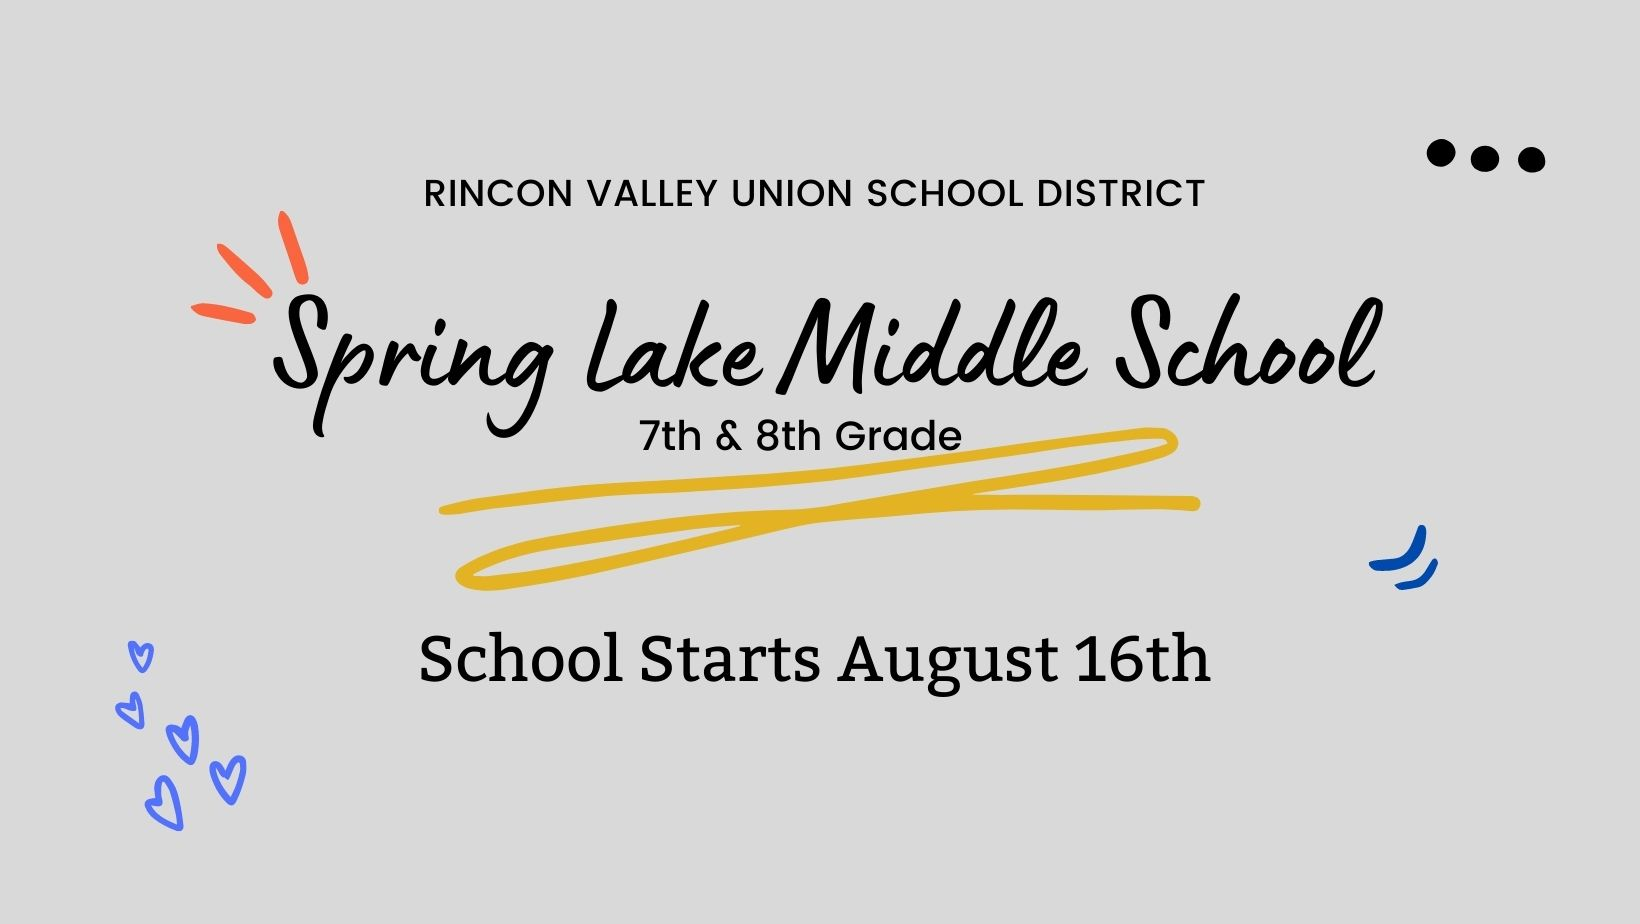 Spring Lake Middle School